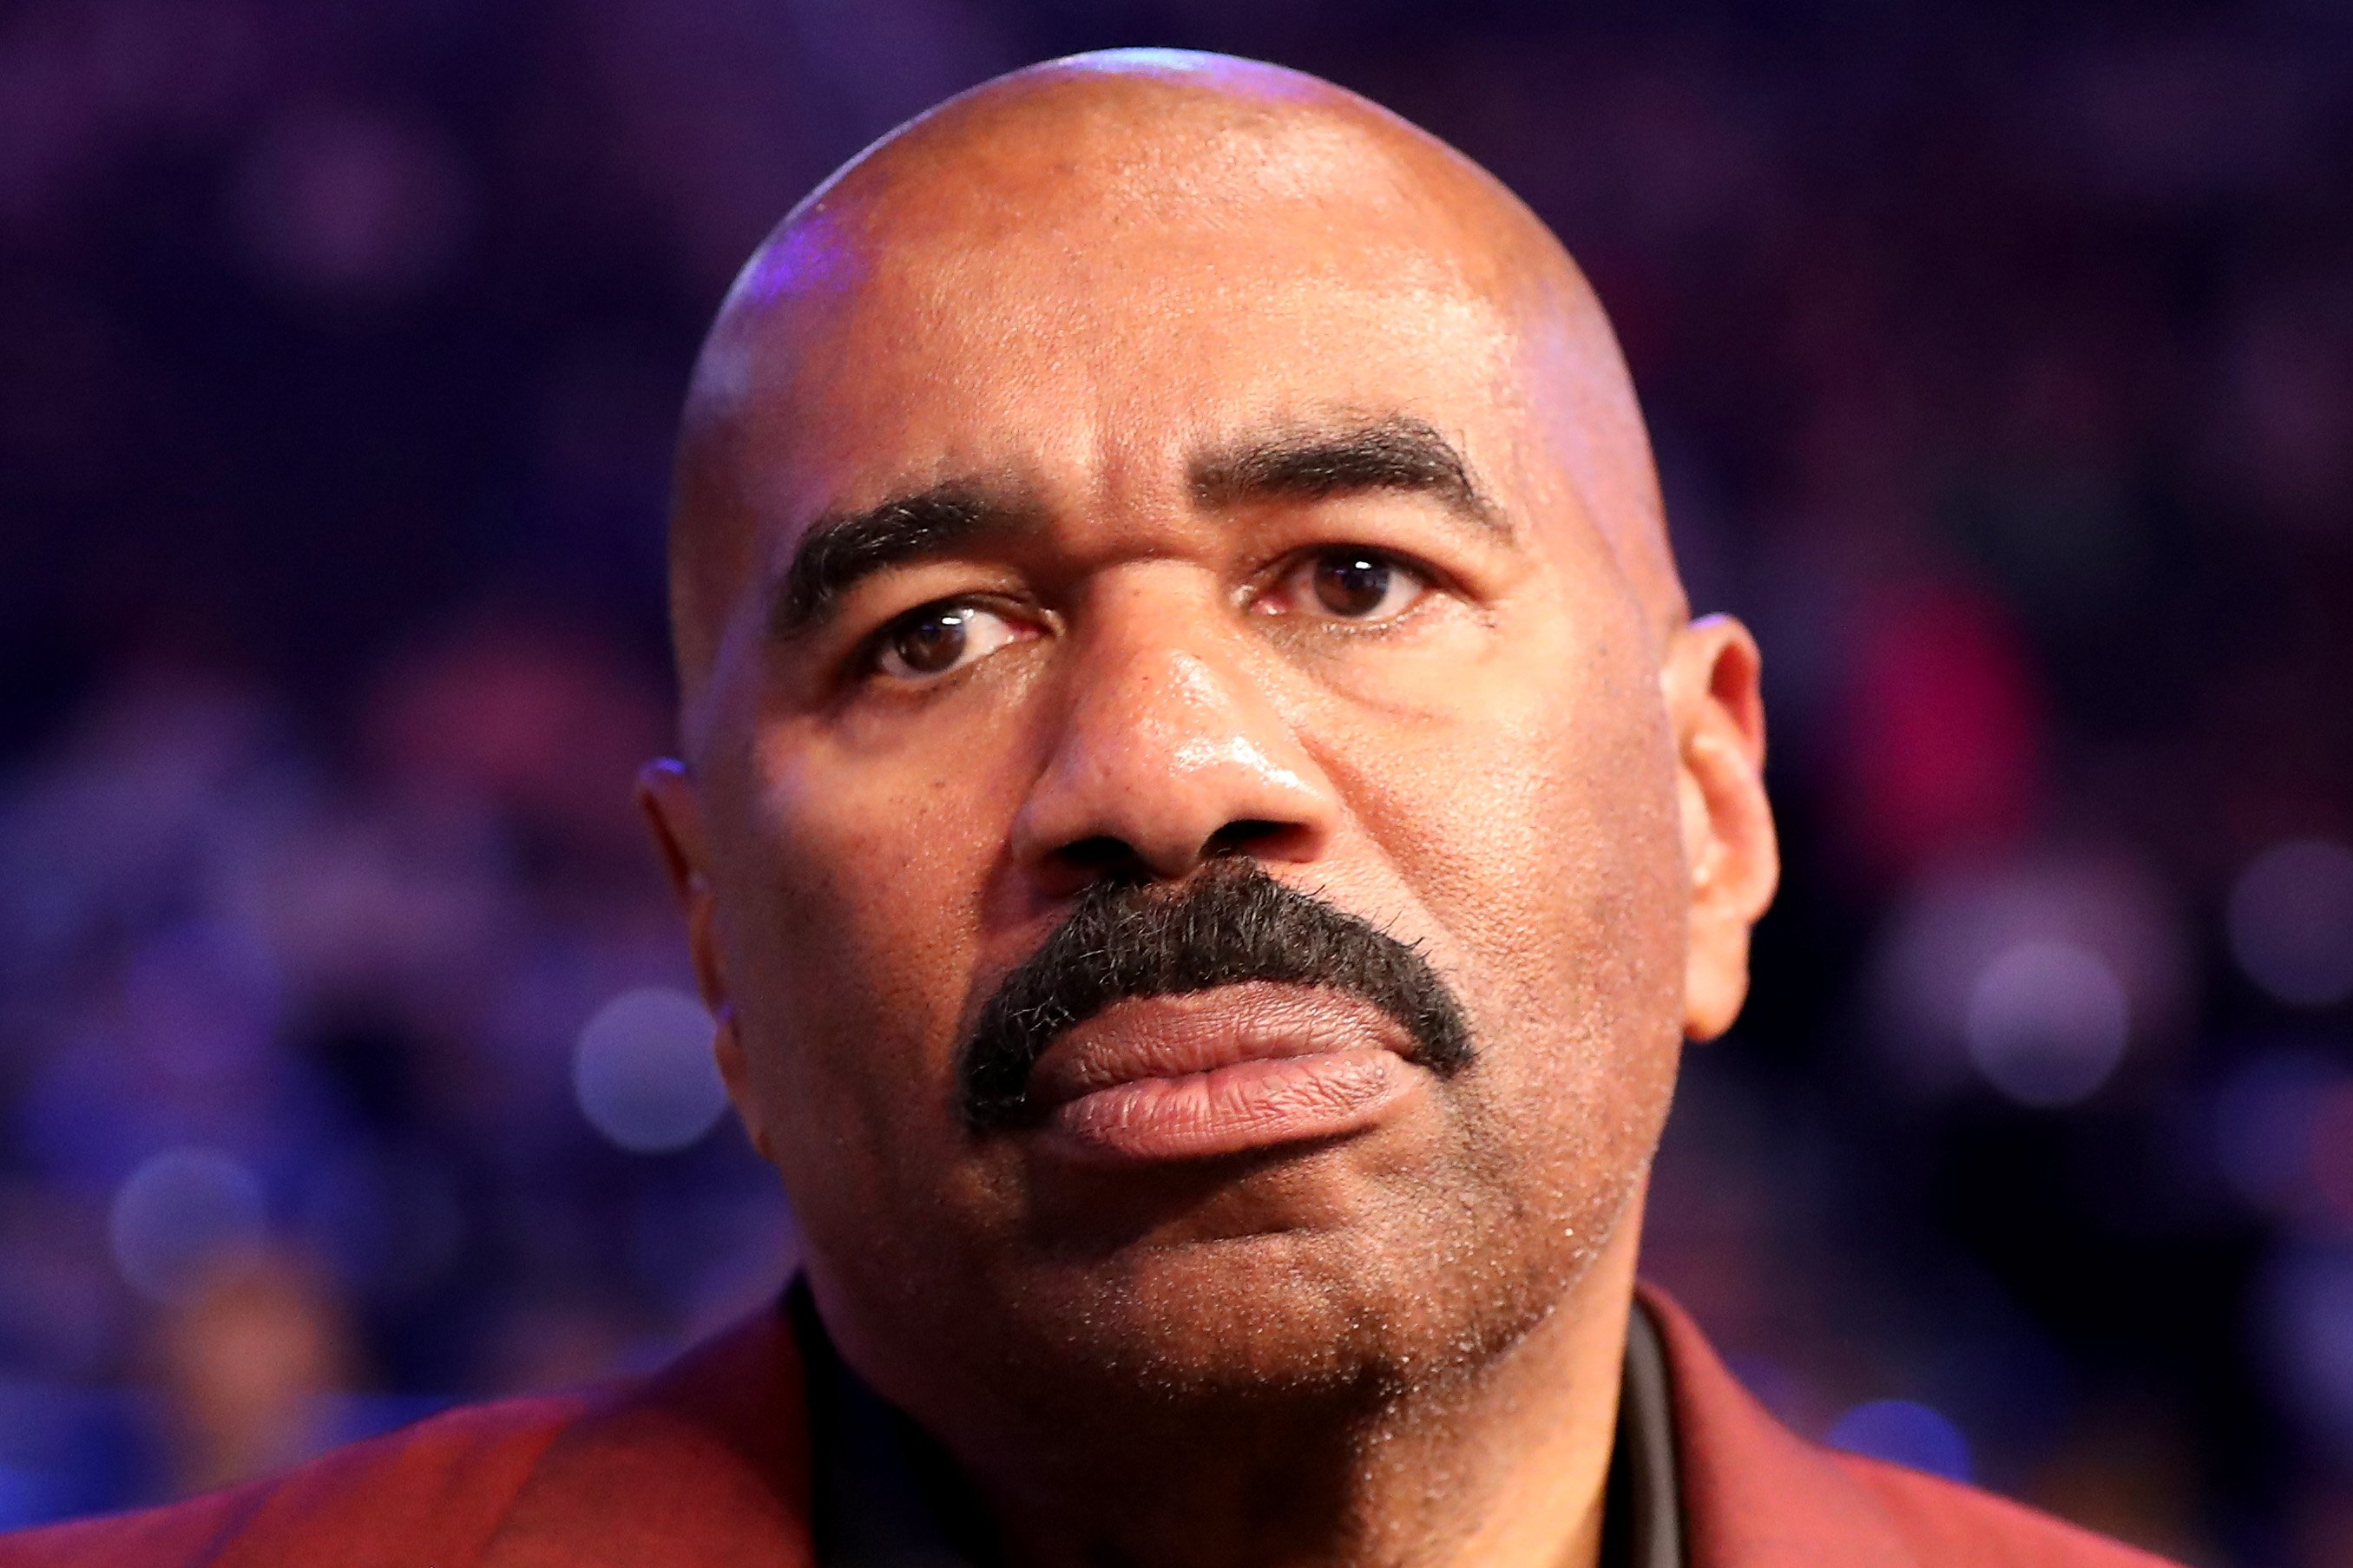 Steve Harvey attends the super welterweight boxing match between Floyd Mayweather Jr. and Conor McGregor on August 26, 2017.   Photo: Getty Images